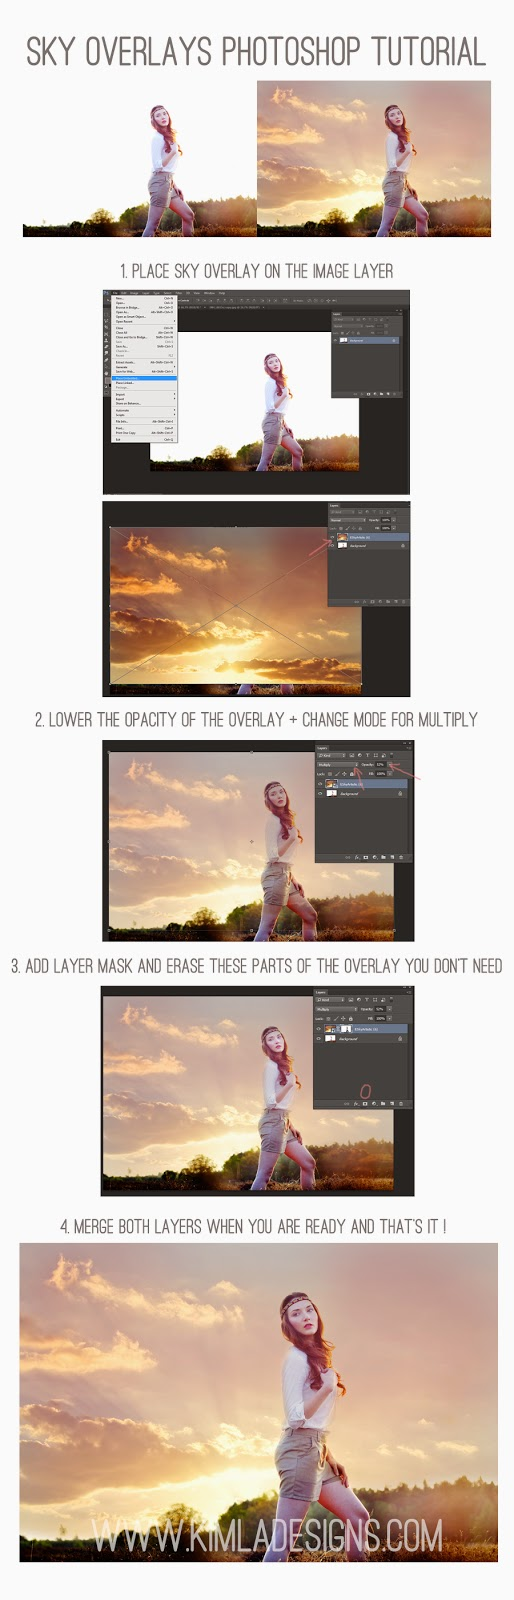 English Sky Overlays Photoshop Tutorial